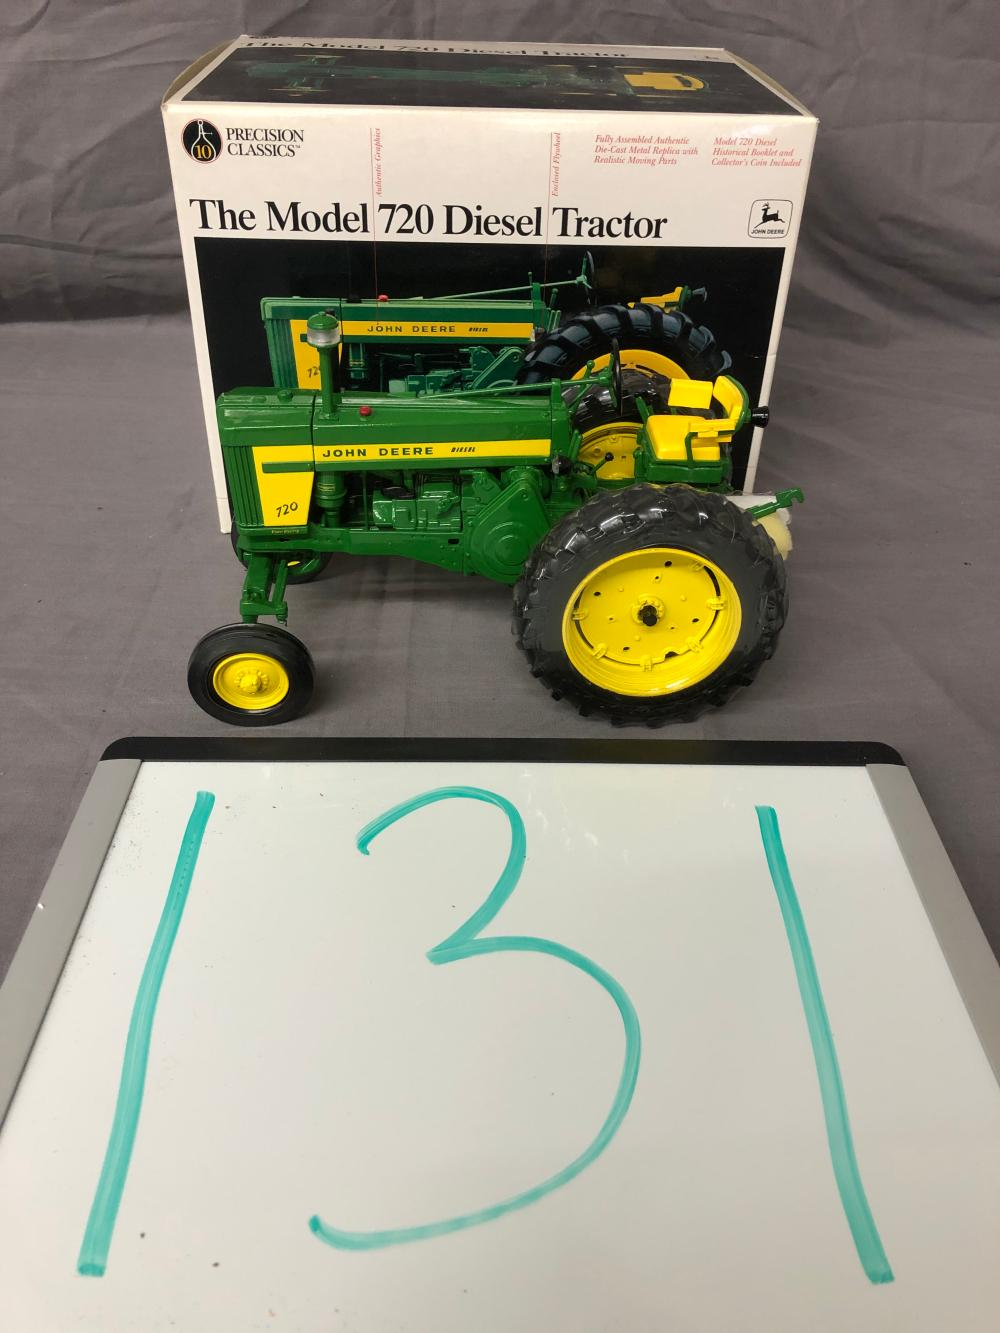 Lot 131: 1/16th Scale Precision John Deere 720 Diesel